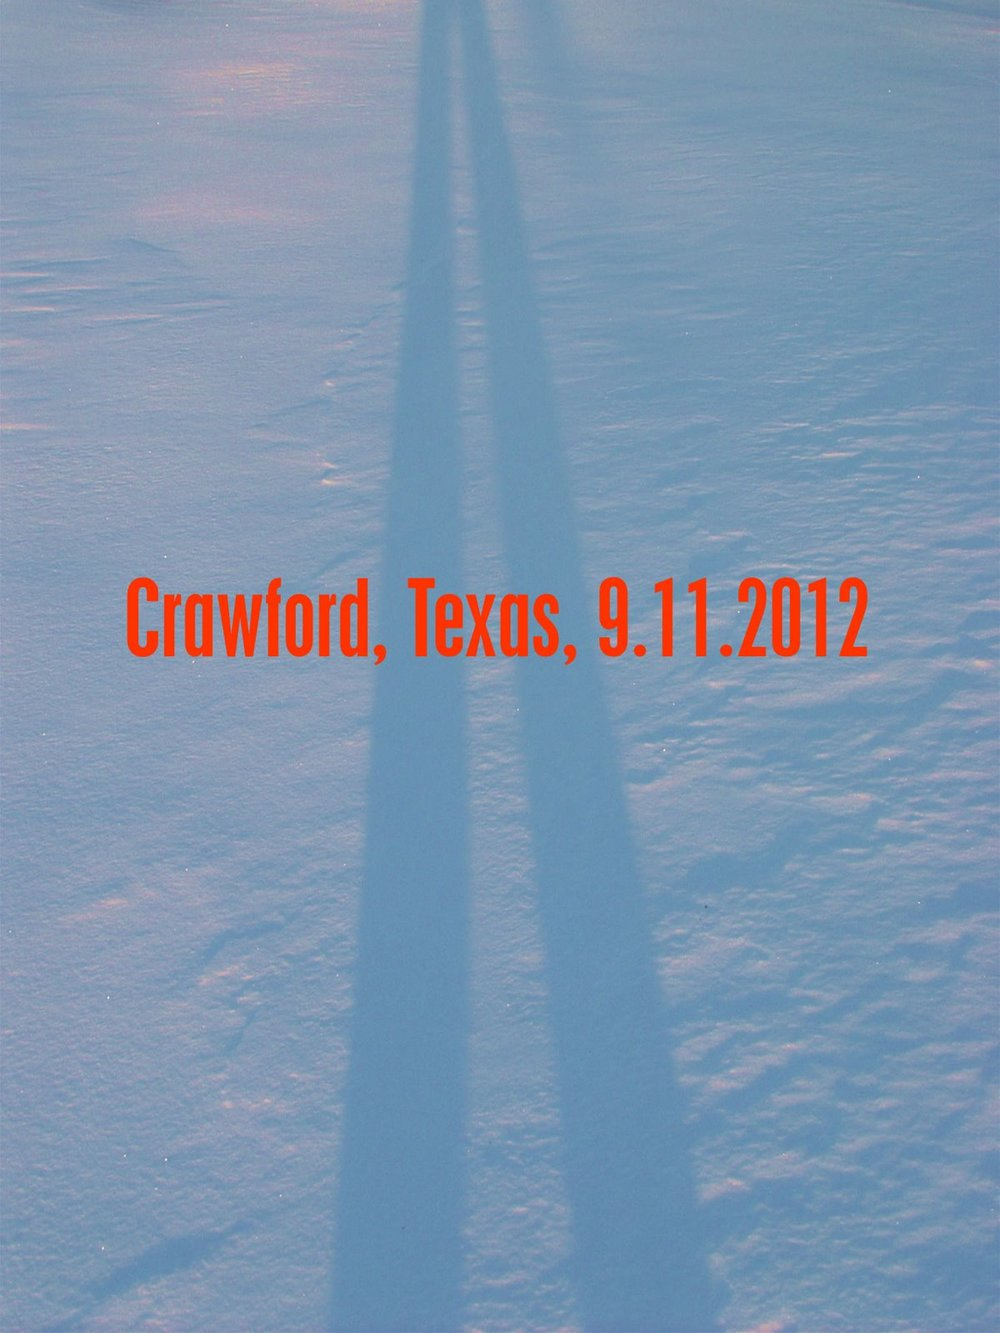 crawford texas 2012b 2.jpg